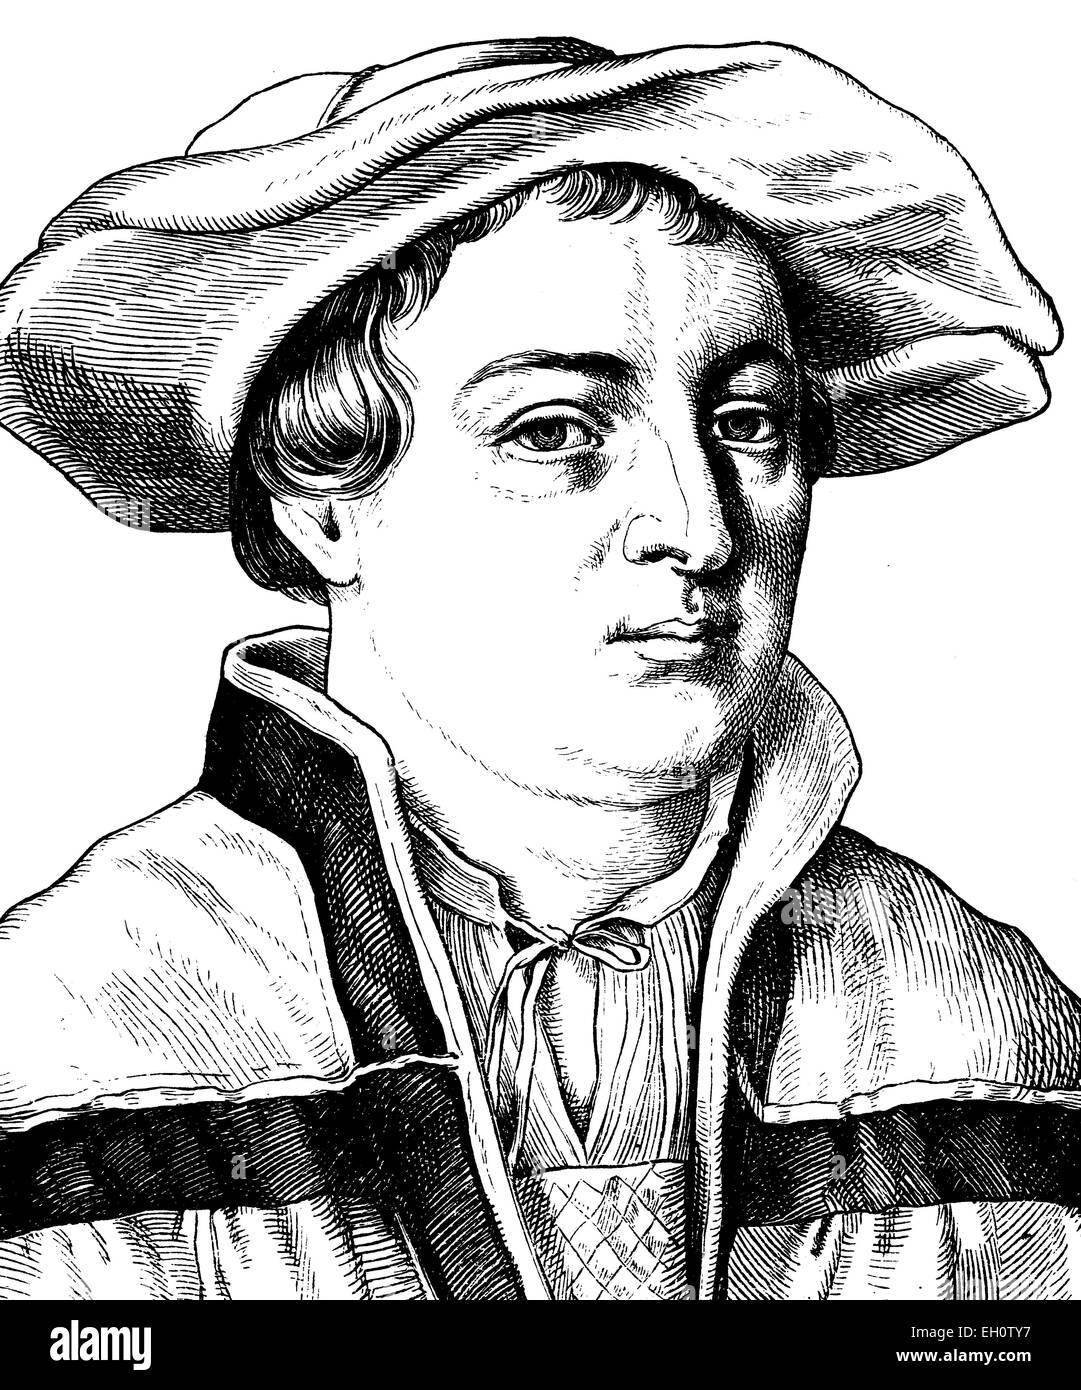 Digital improved image of Hans Holbein the Younger, 1497 - 1554, German painter, portrait, historical illustration, - Stock Image